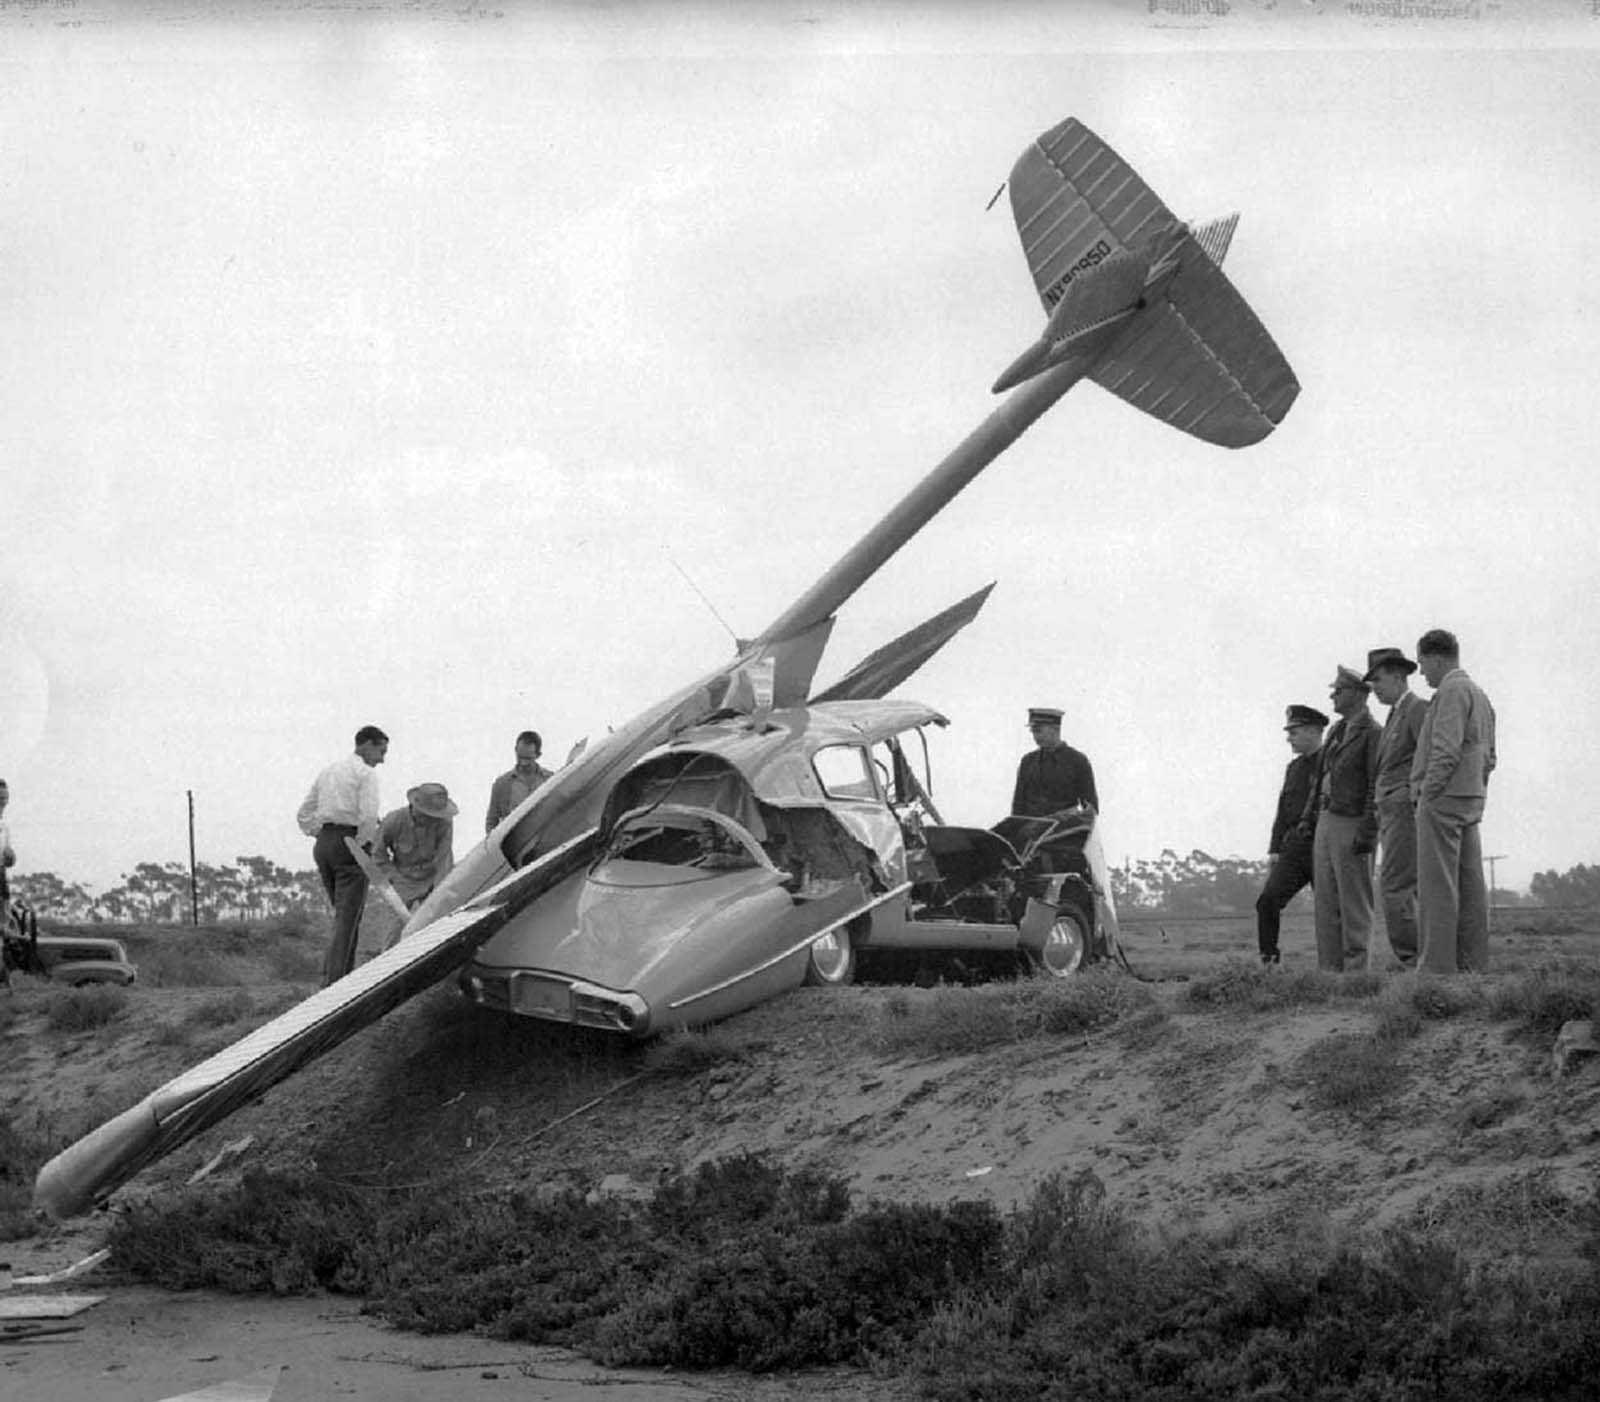 A crashed ConvAirCar. 1947.